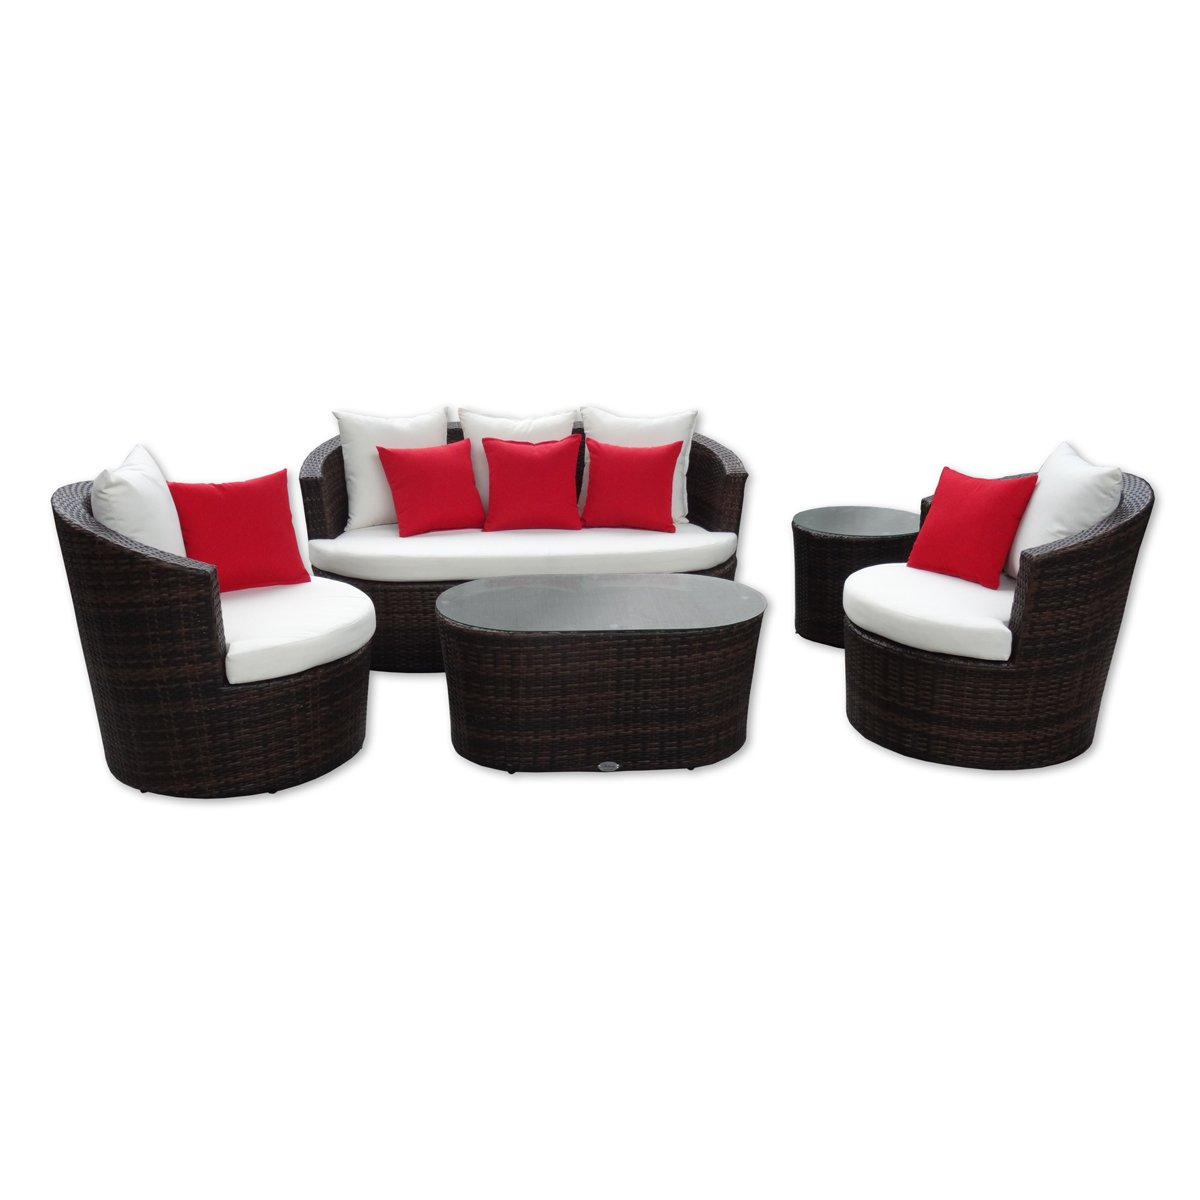 Rattan gartenm bel garten lounge set rundes design for Lounge set rattan gunstig